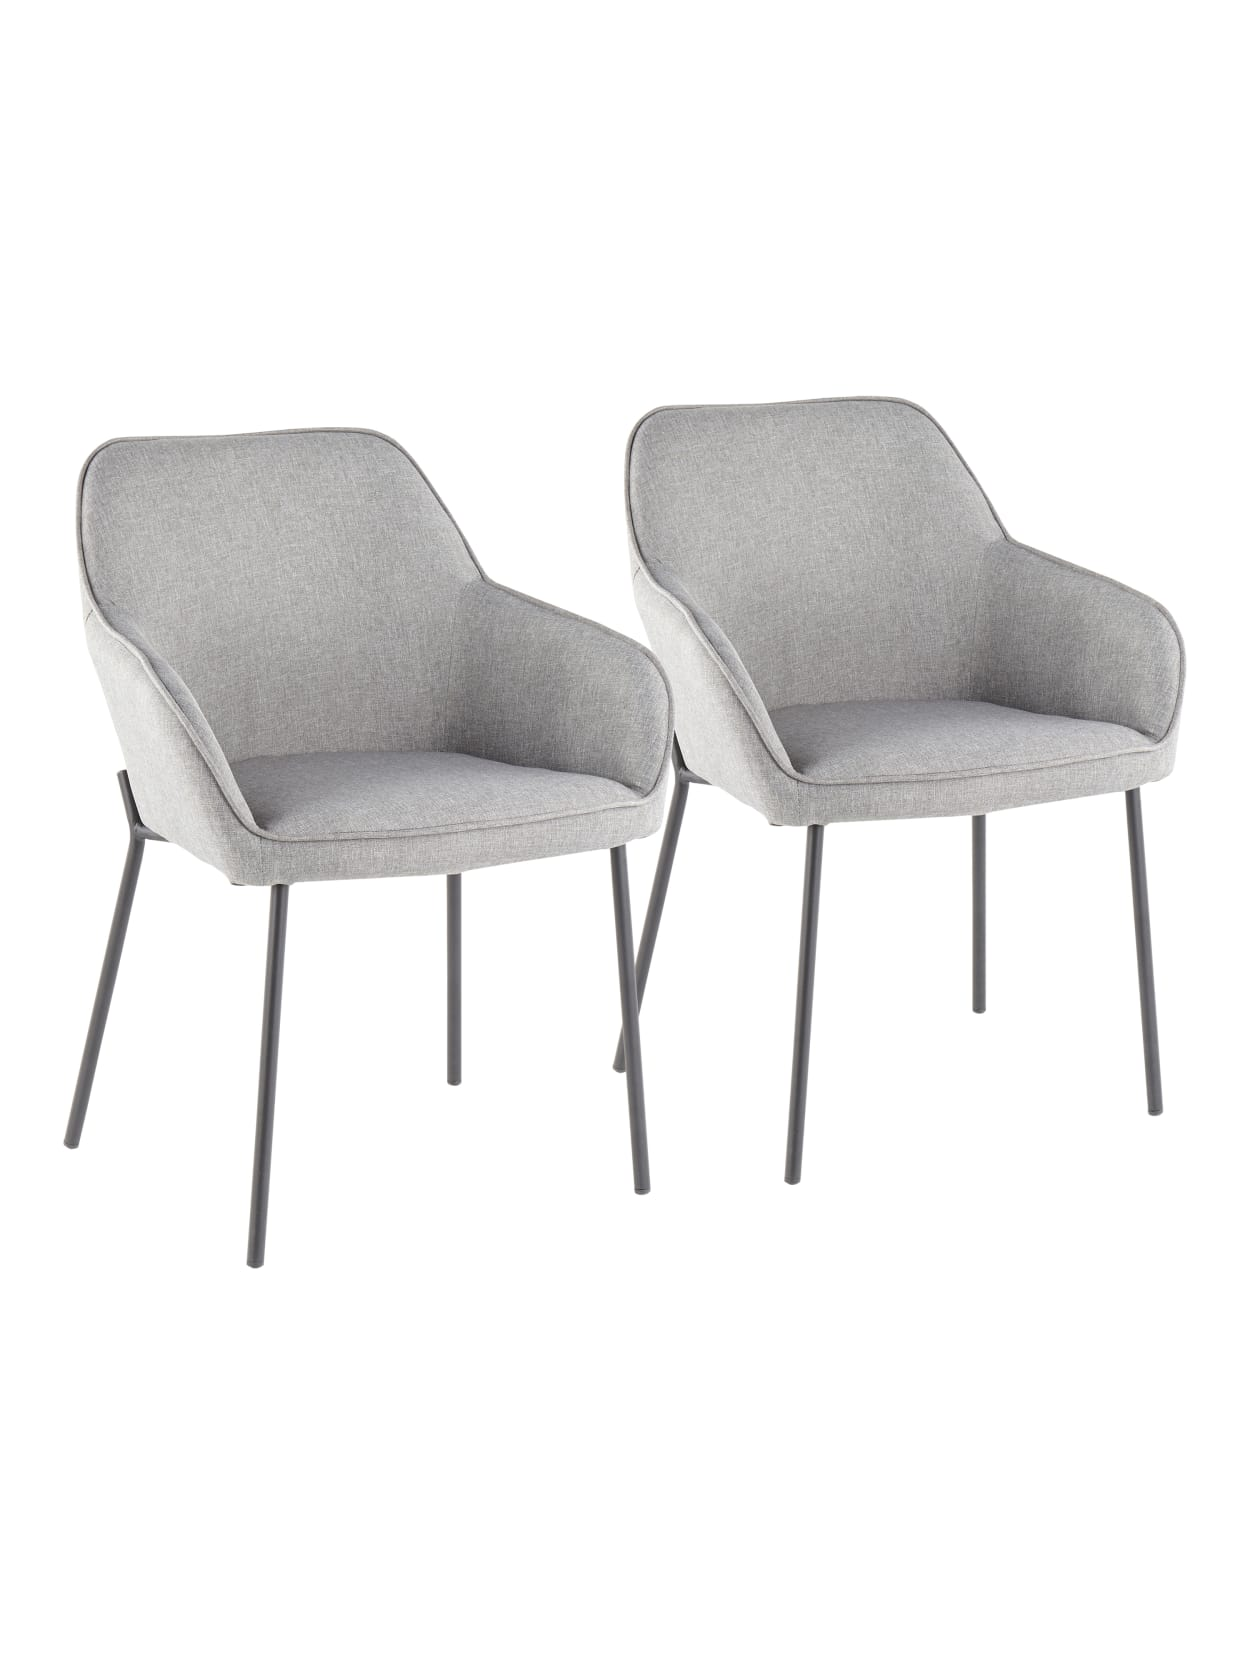 LumiSource Daniella Chairs BlackGray 2PK - Office Depot